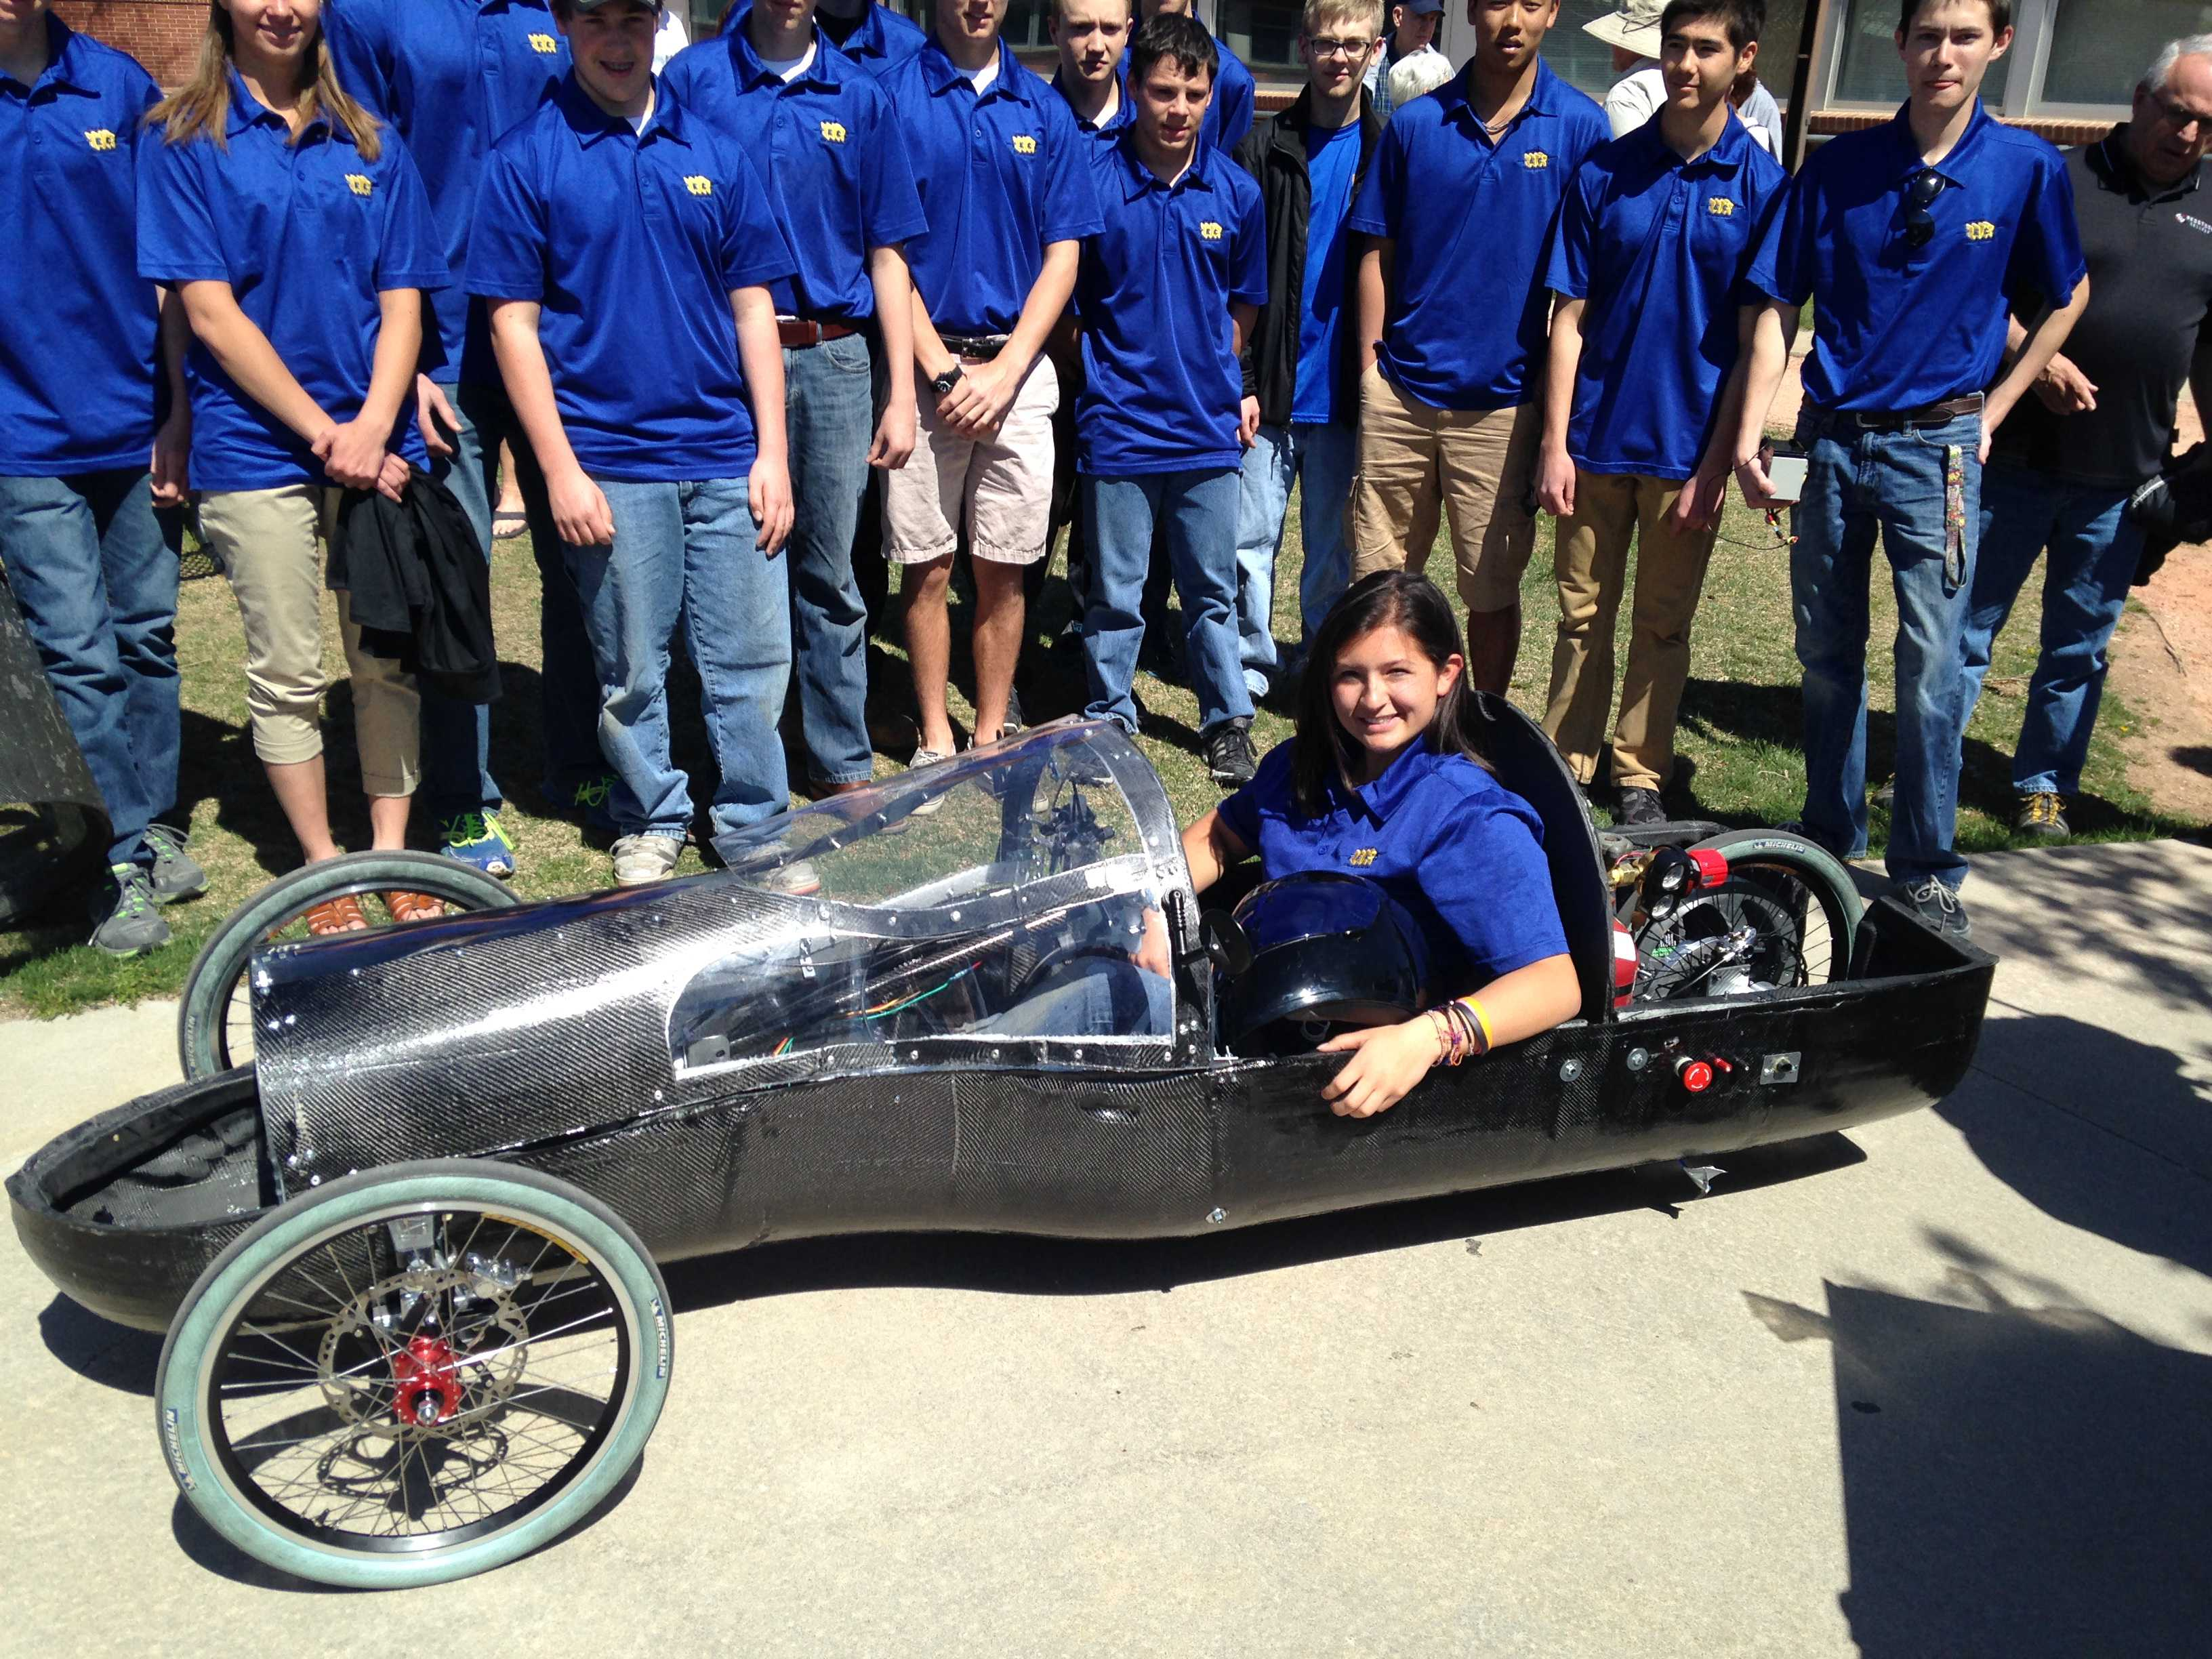 The original STEM team and their 2014 1st place hydrogen fuel cell car. Haystack file photo